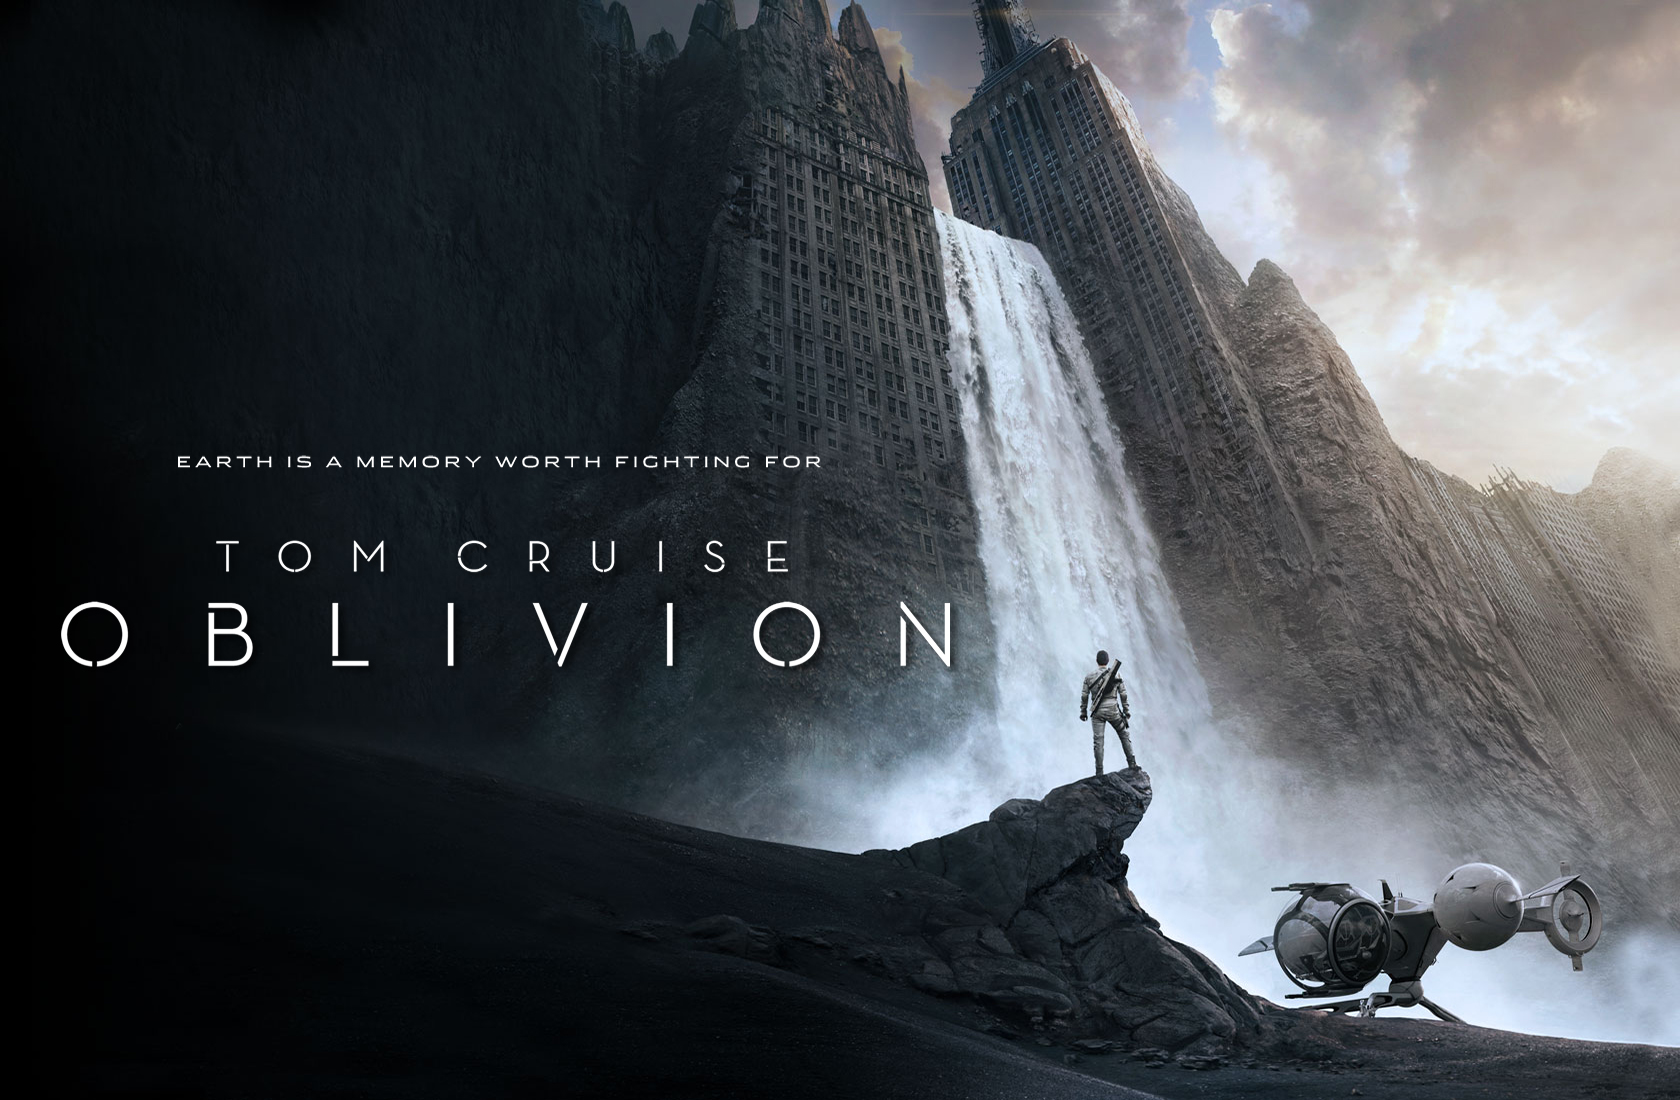 20 HD wallpapersscreenshots of Oblivion with Tom Cruise Movie 1680x1100